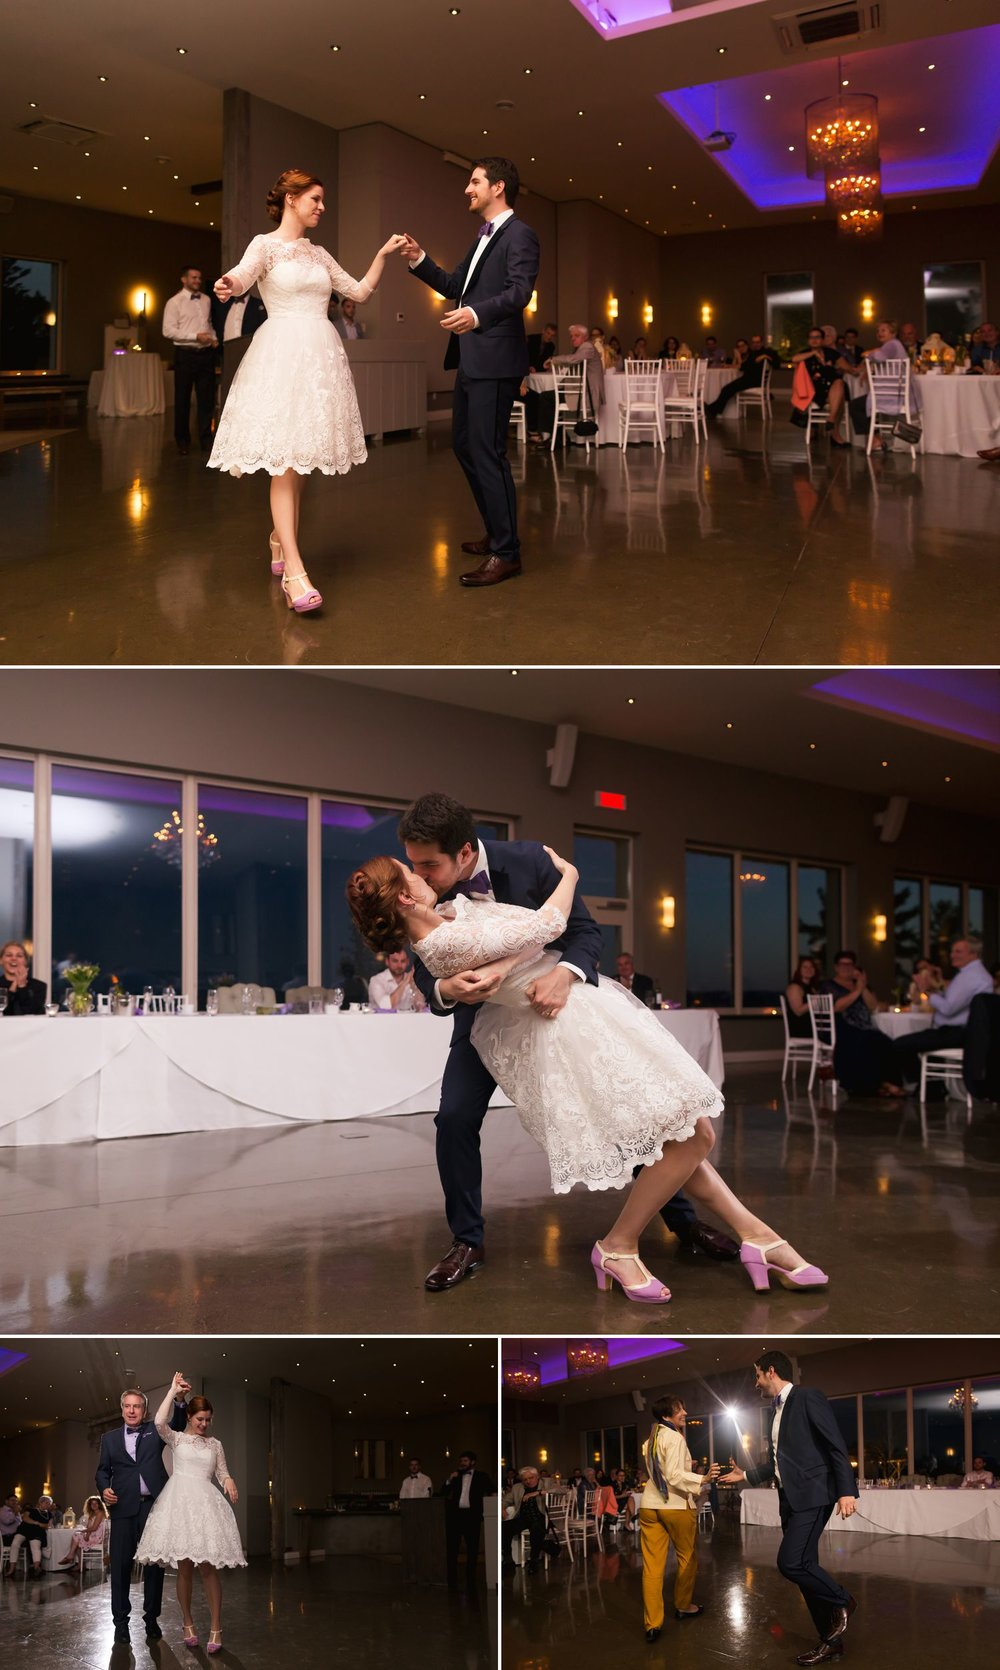 The bride and groom during their first dance at their Belvedere wedding reception in Wakefield, Quebec